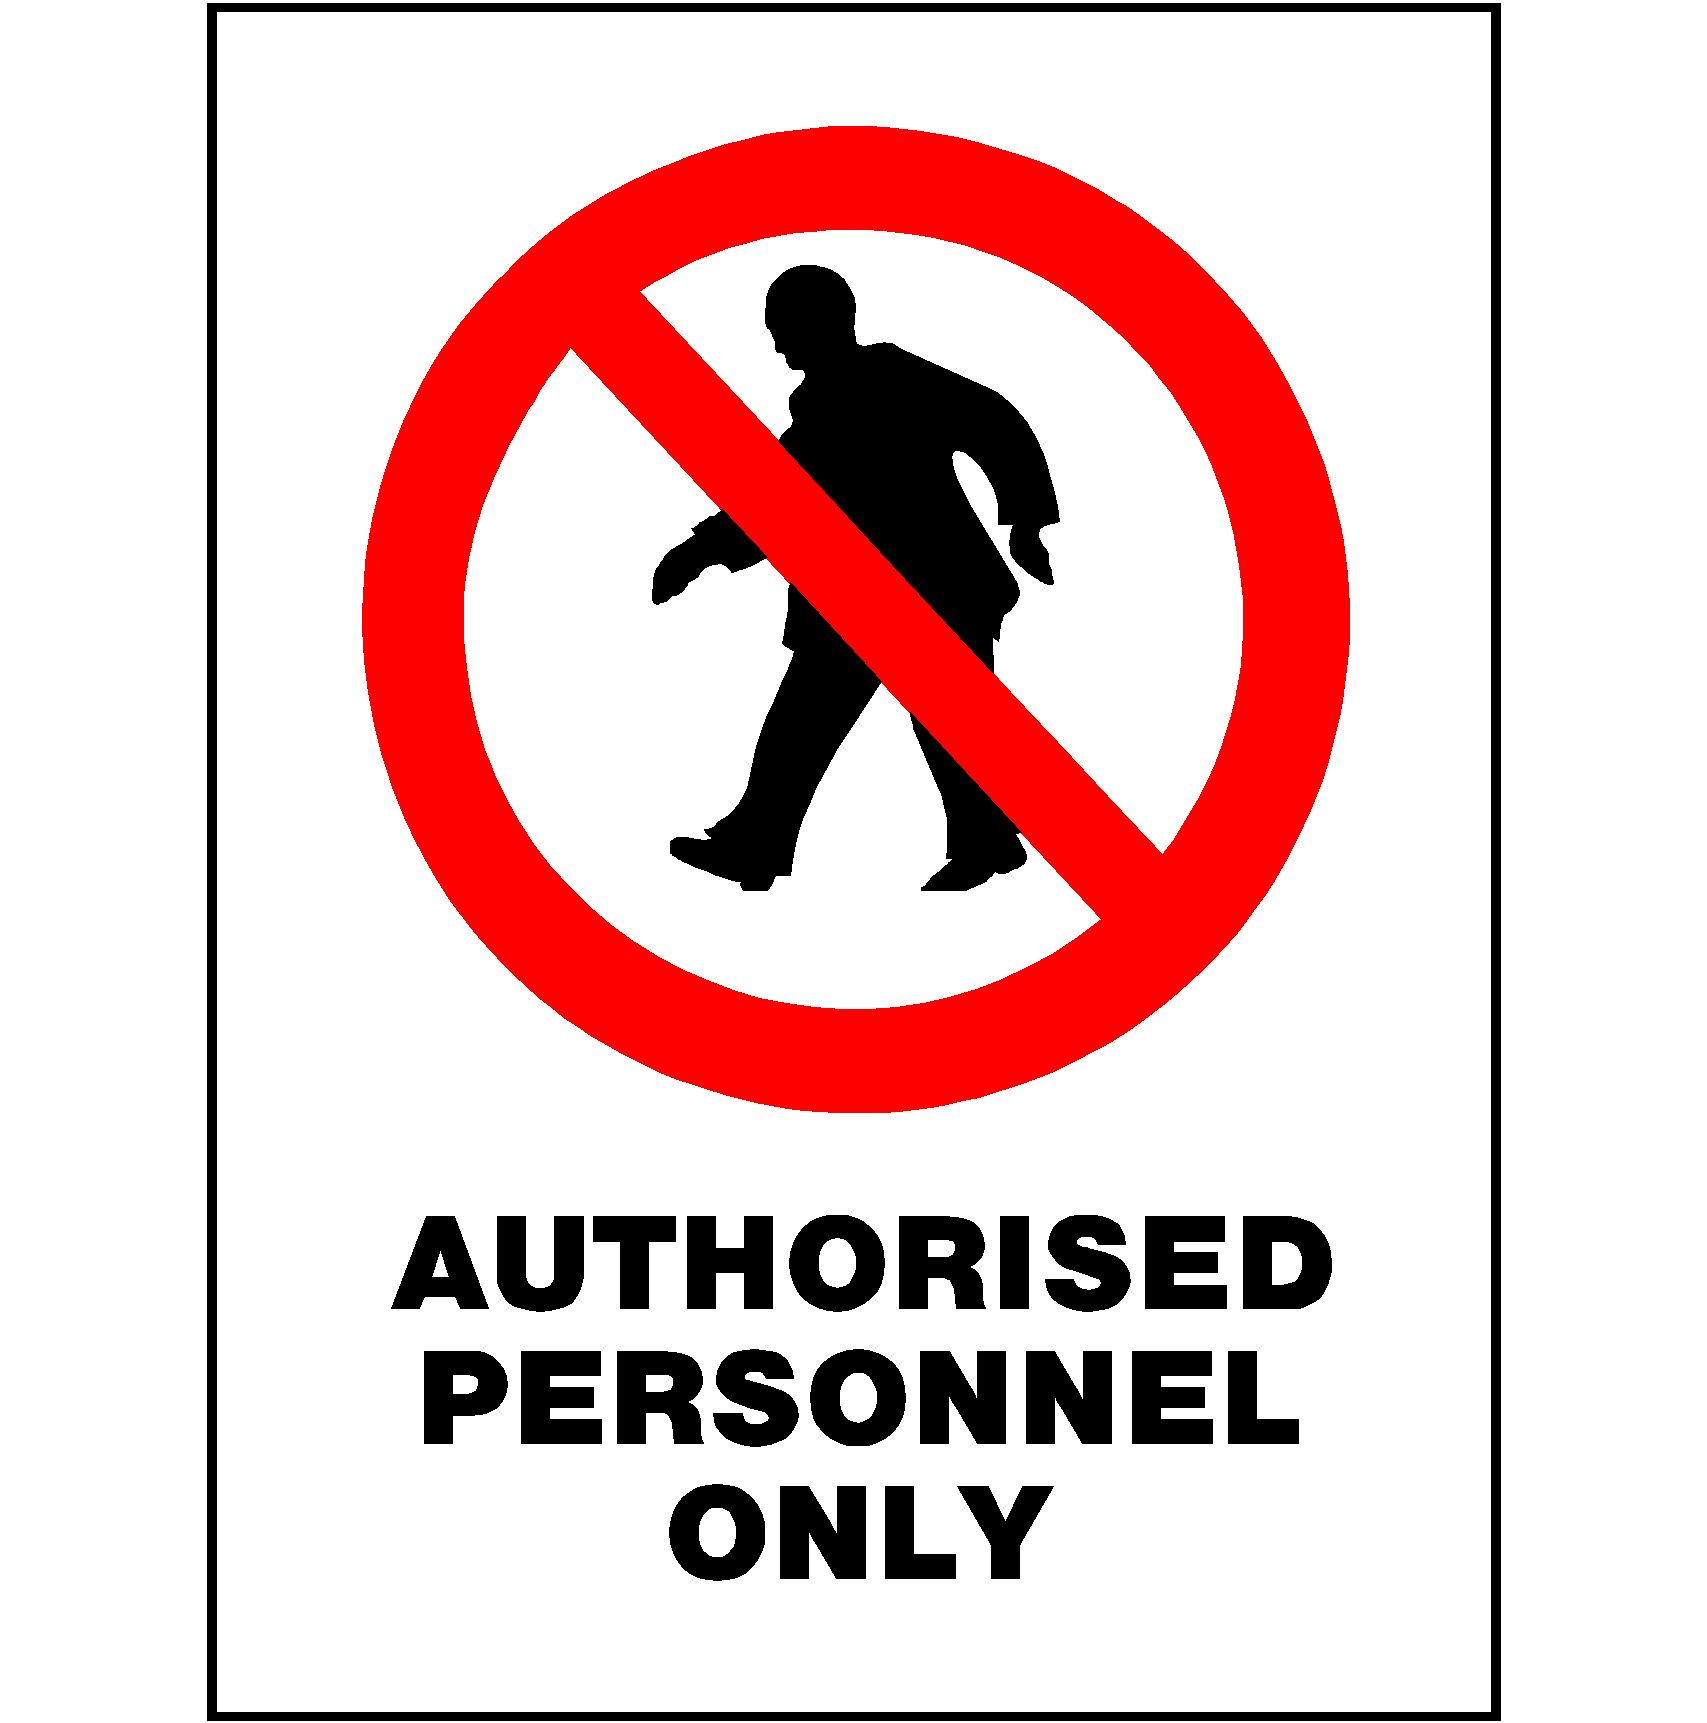 Authorised Personnel Only